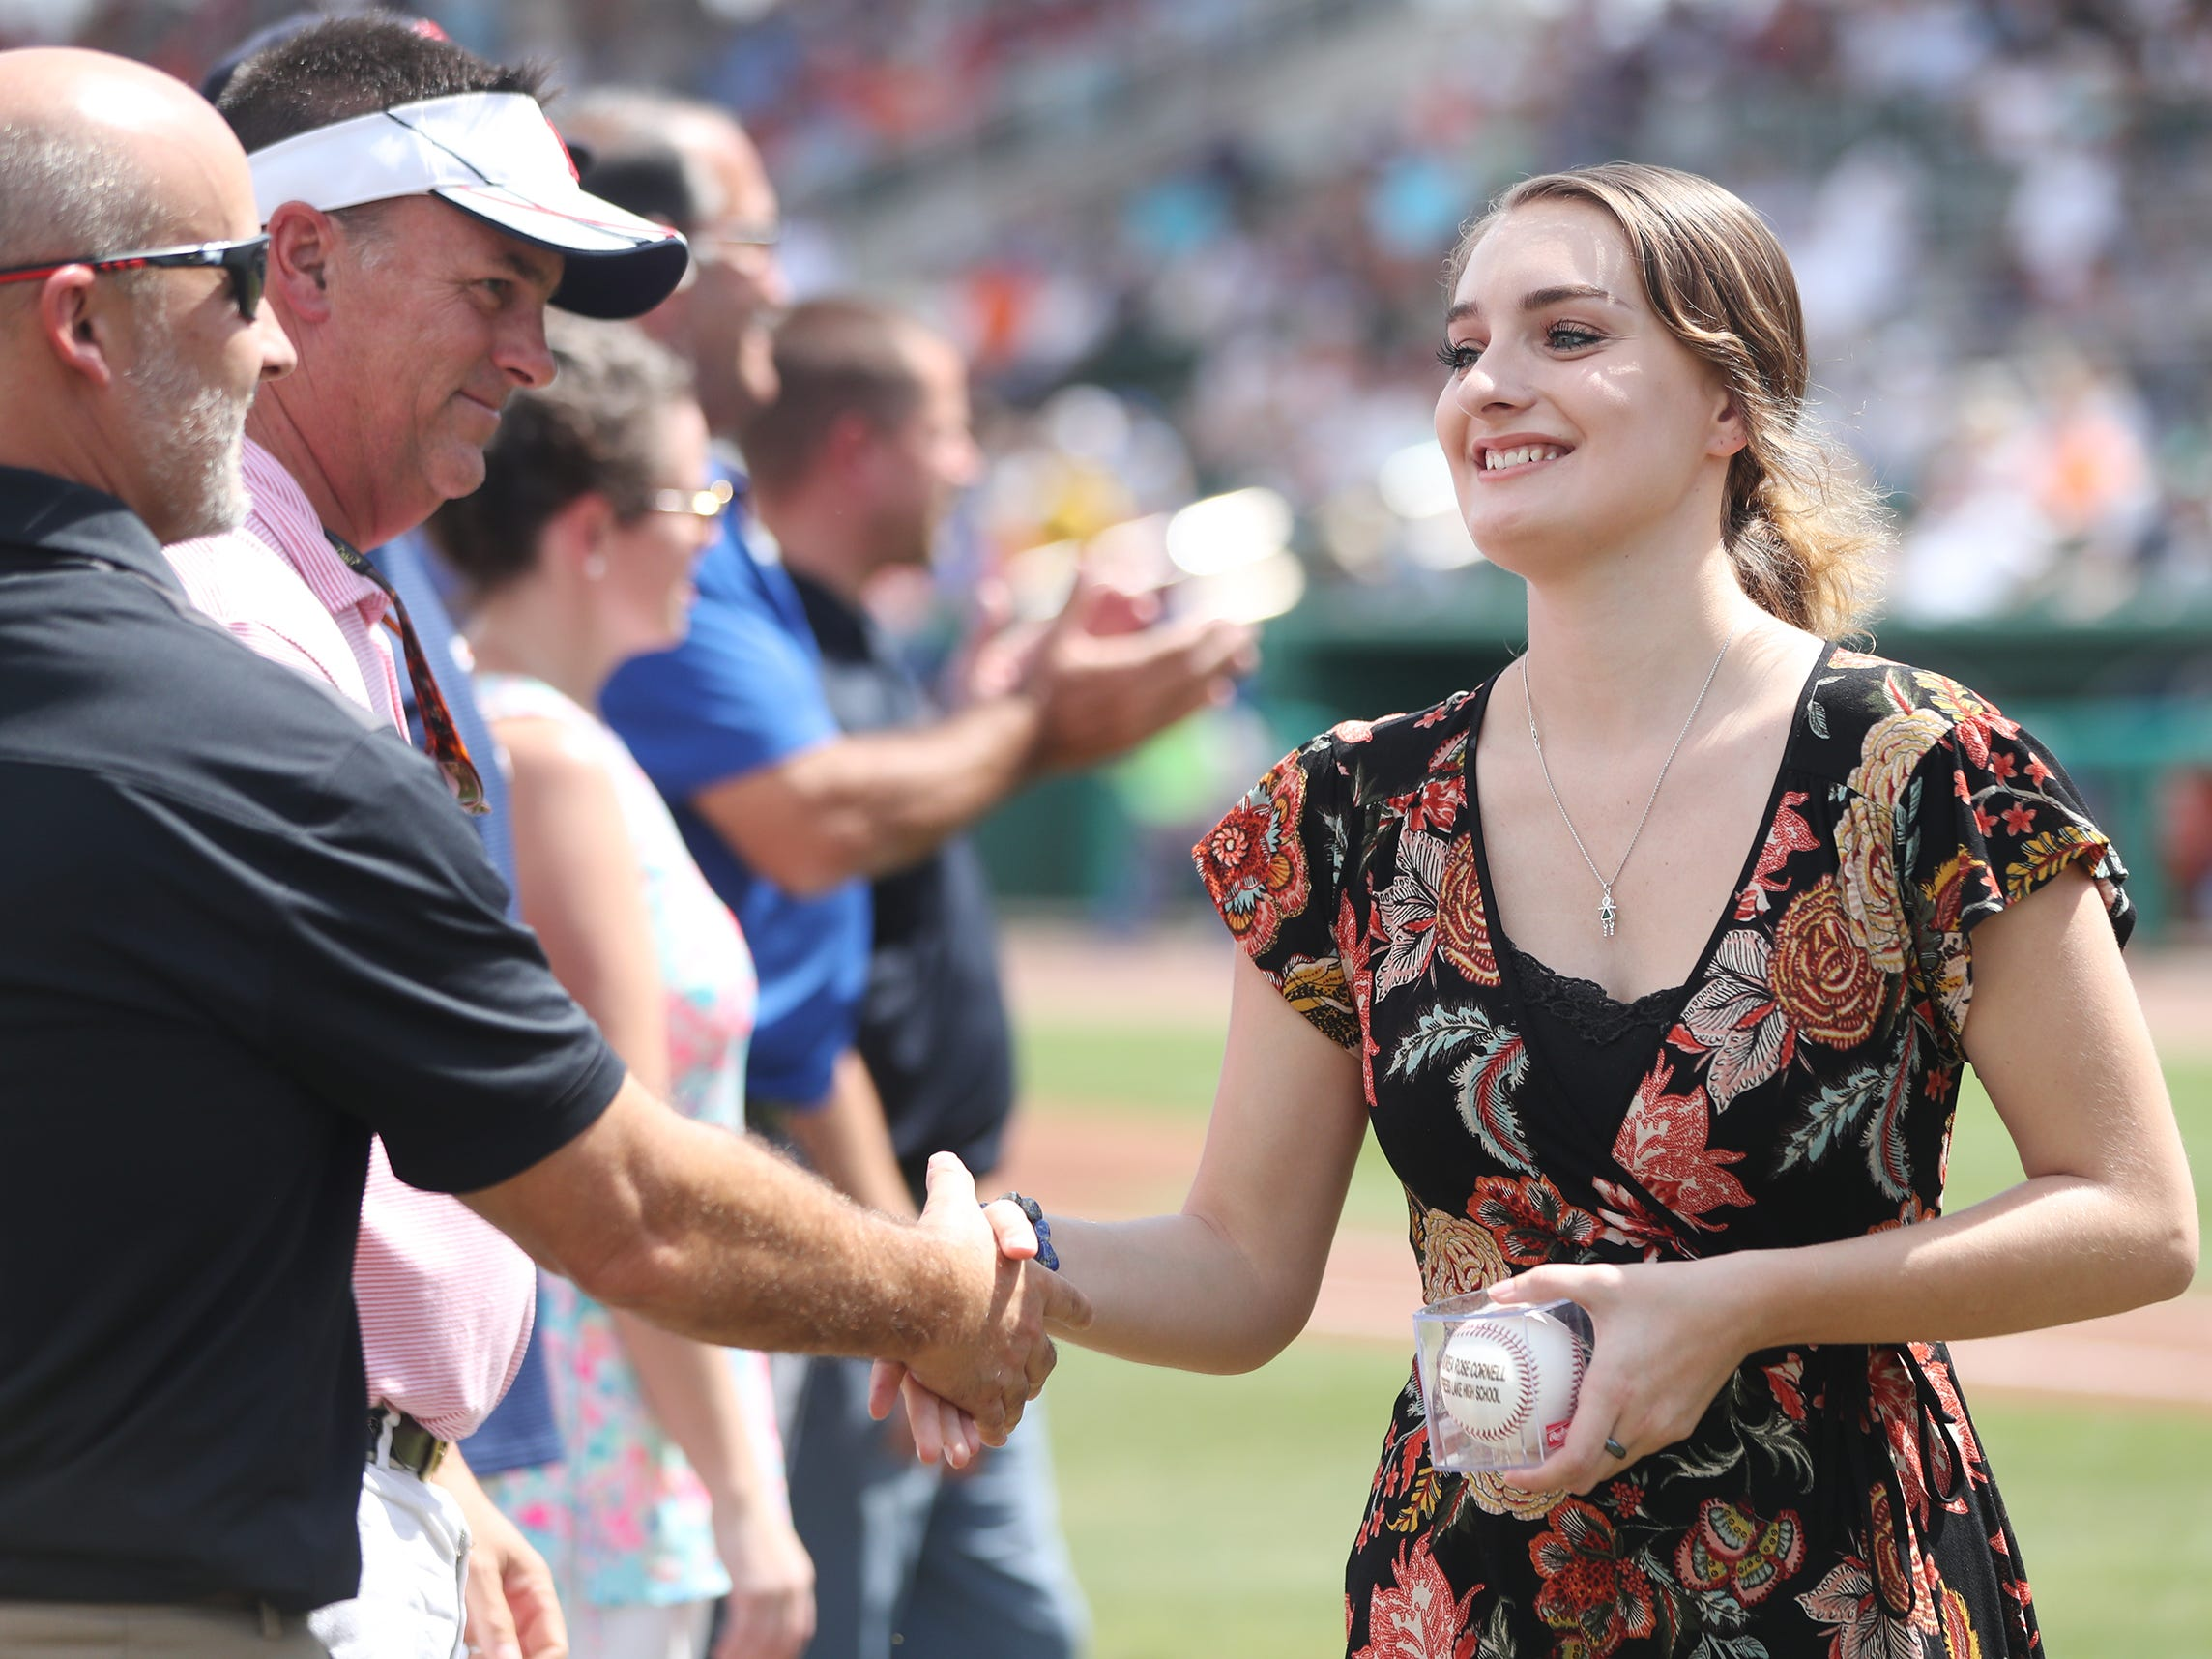 Cypress Lake High School's Andrea Cornell was one of 13 Lee County public high school seniors that received a $5,000 scholarship from the Boston Red Sox Foundation on Saturday before the team's game against the New York Mets at JetBlue Park in Fort Myers. The students' academic achievements and community service efforts were the basis for the honor.